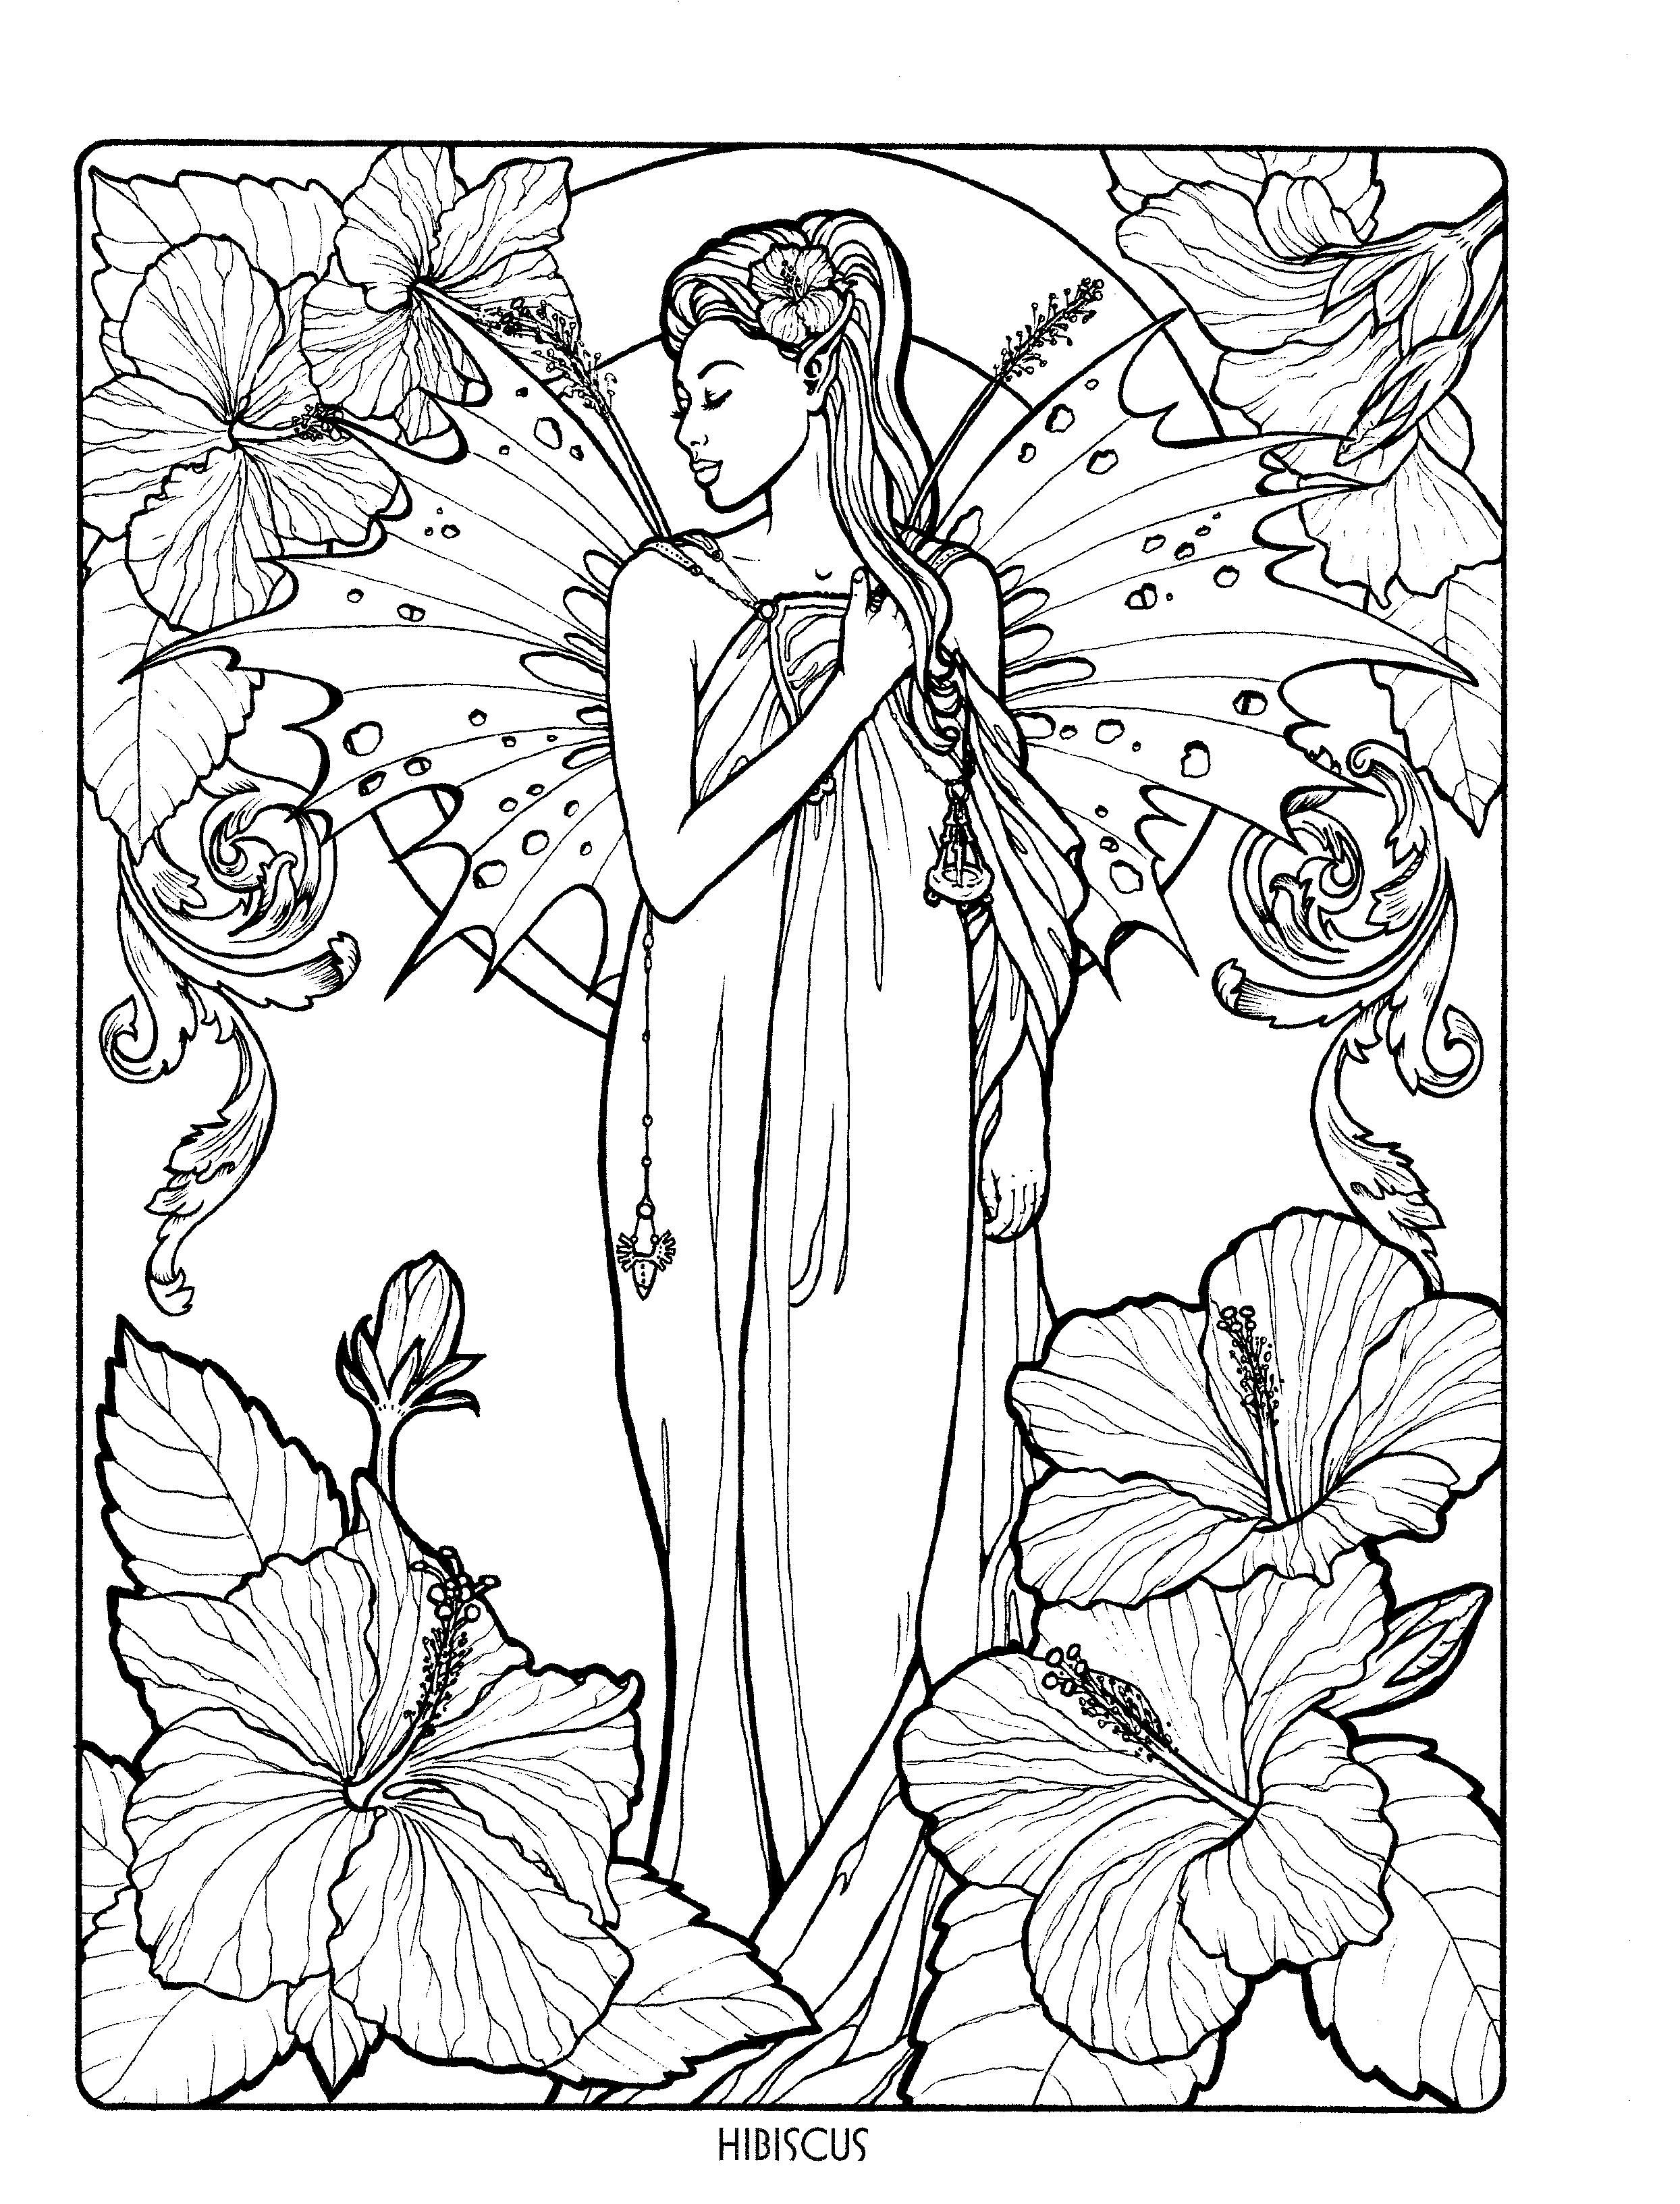 Pin By Brenda Mendenhall On Art I Like Pinterest Coloring Pages